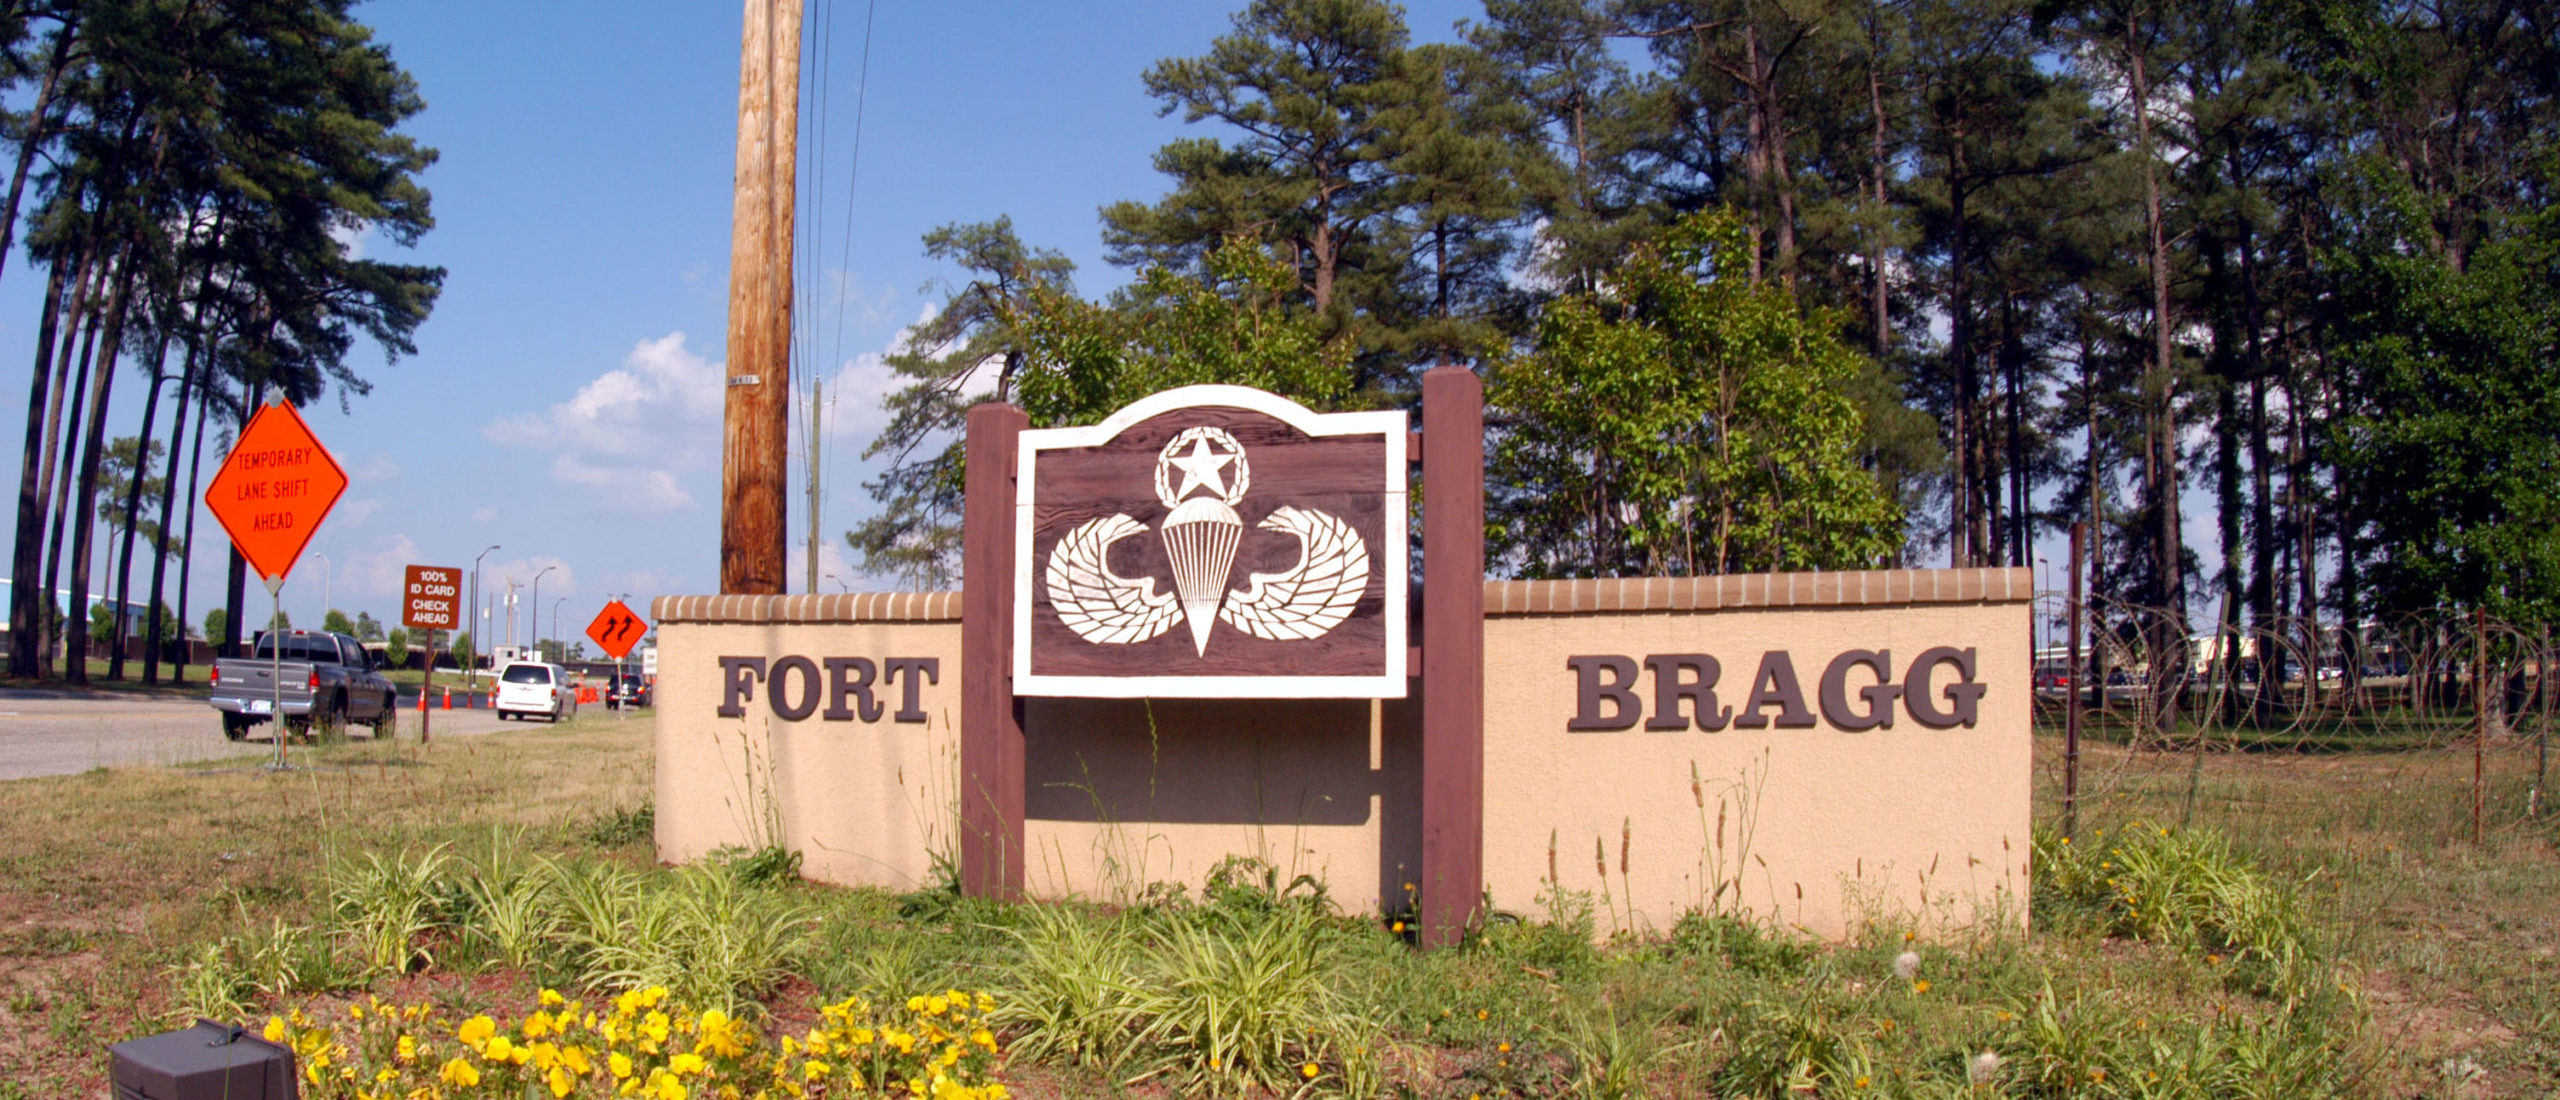 OnlyFans sex worker earns $35,000 after Fort Braggs